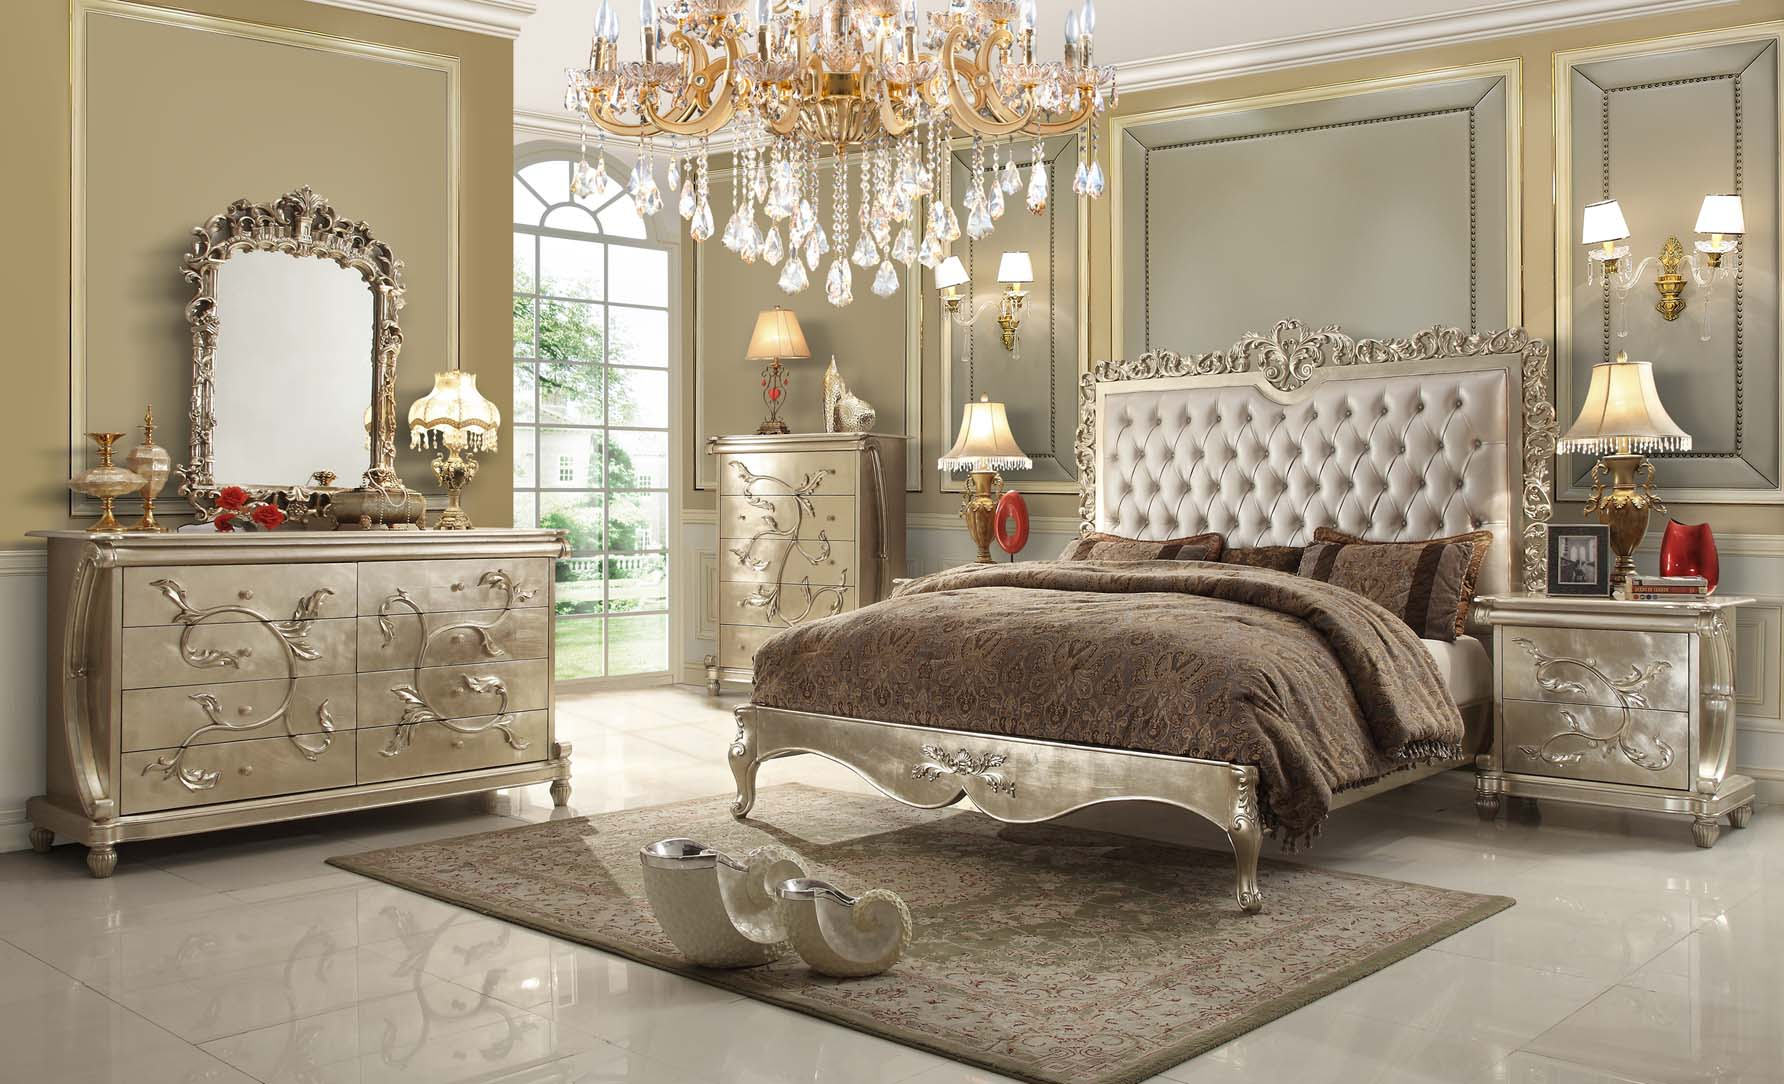 Shapely Royal Decor Bedroom Set